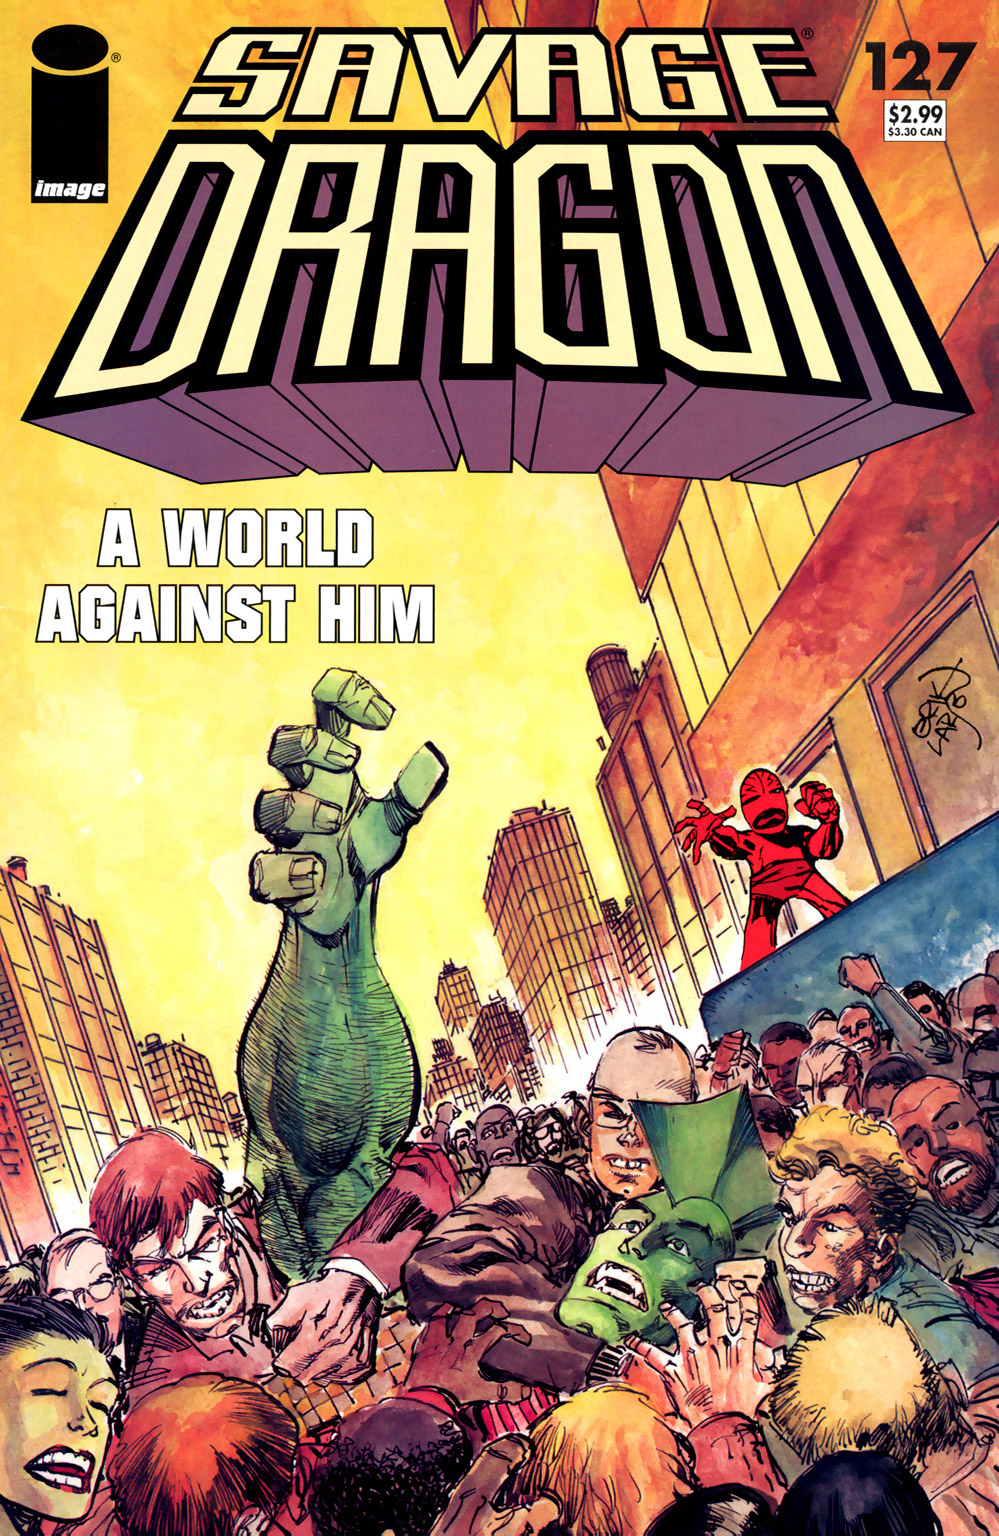 Cover Savage Dragon Vol.2 #127